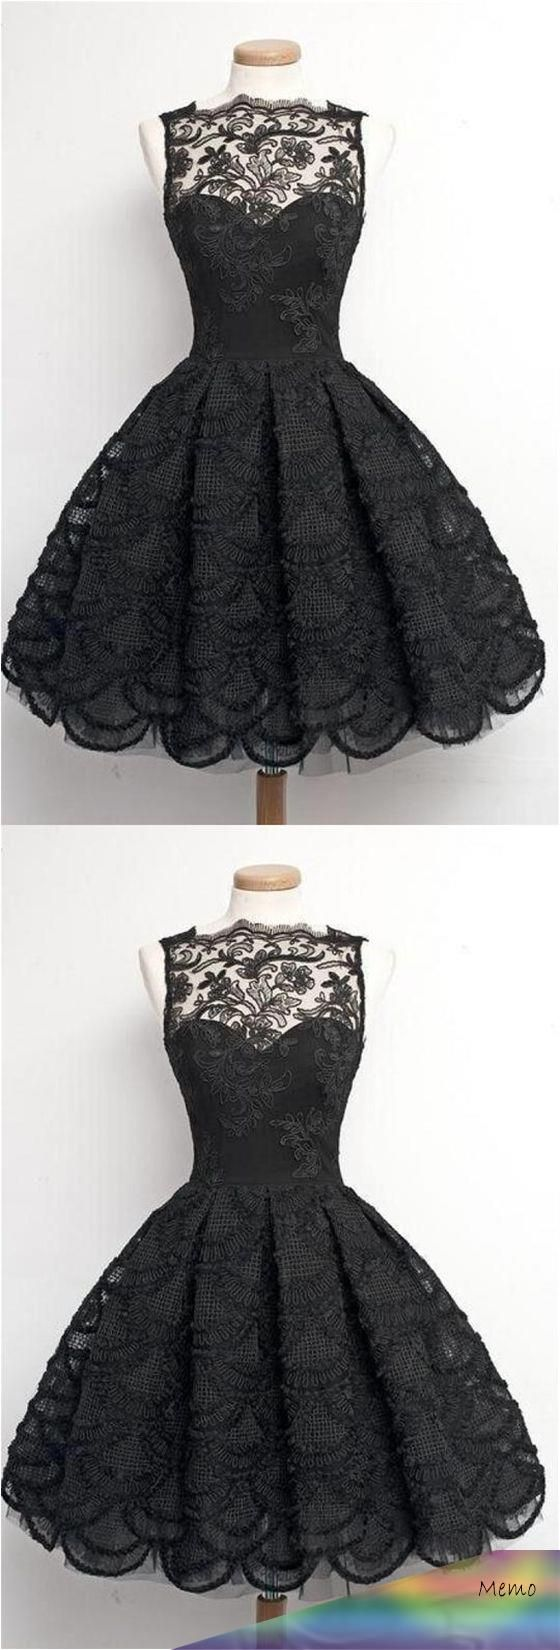 Simple Black A Line Sweetheart Knee Length Homecoming Dresses Lace